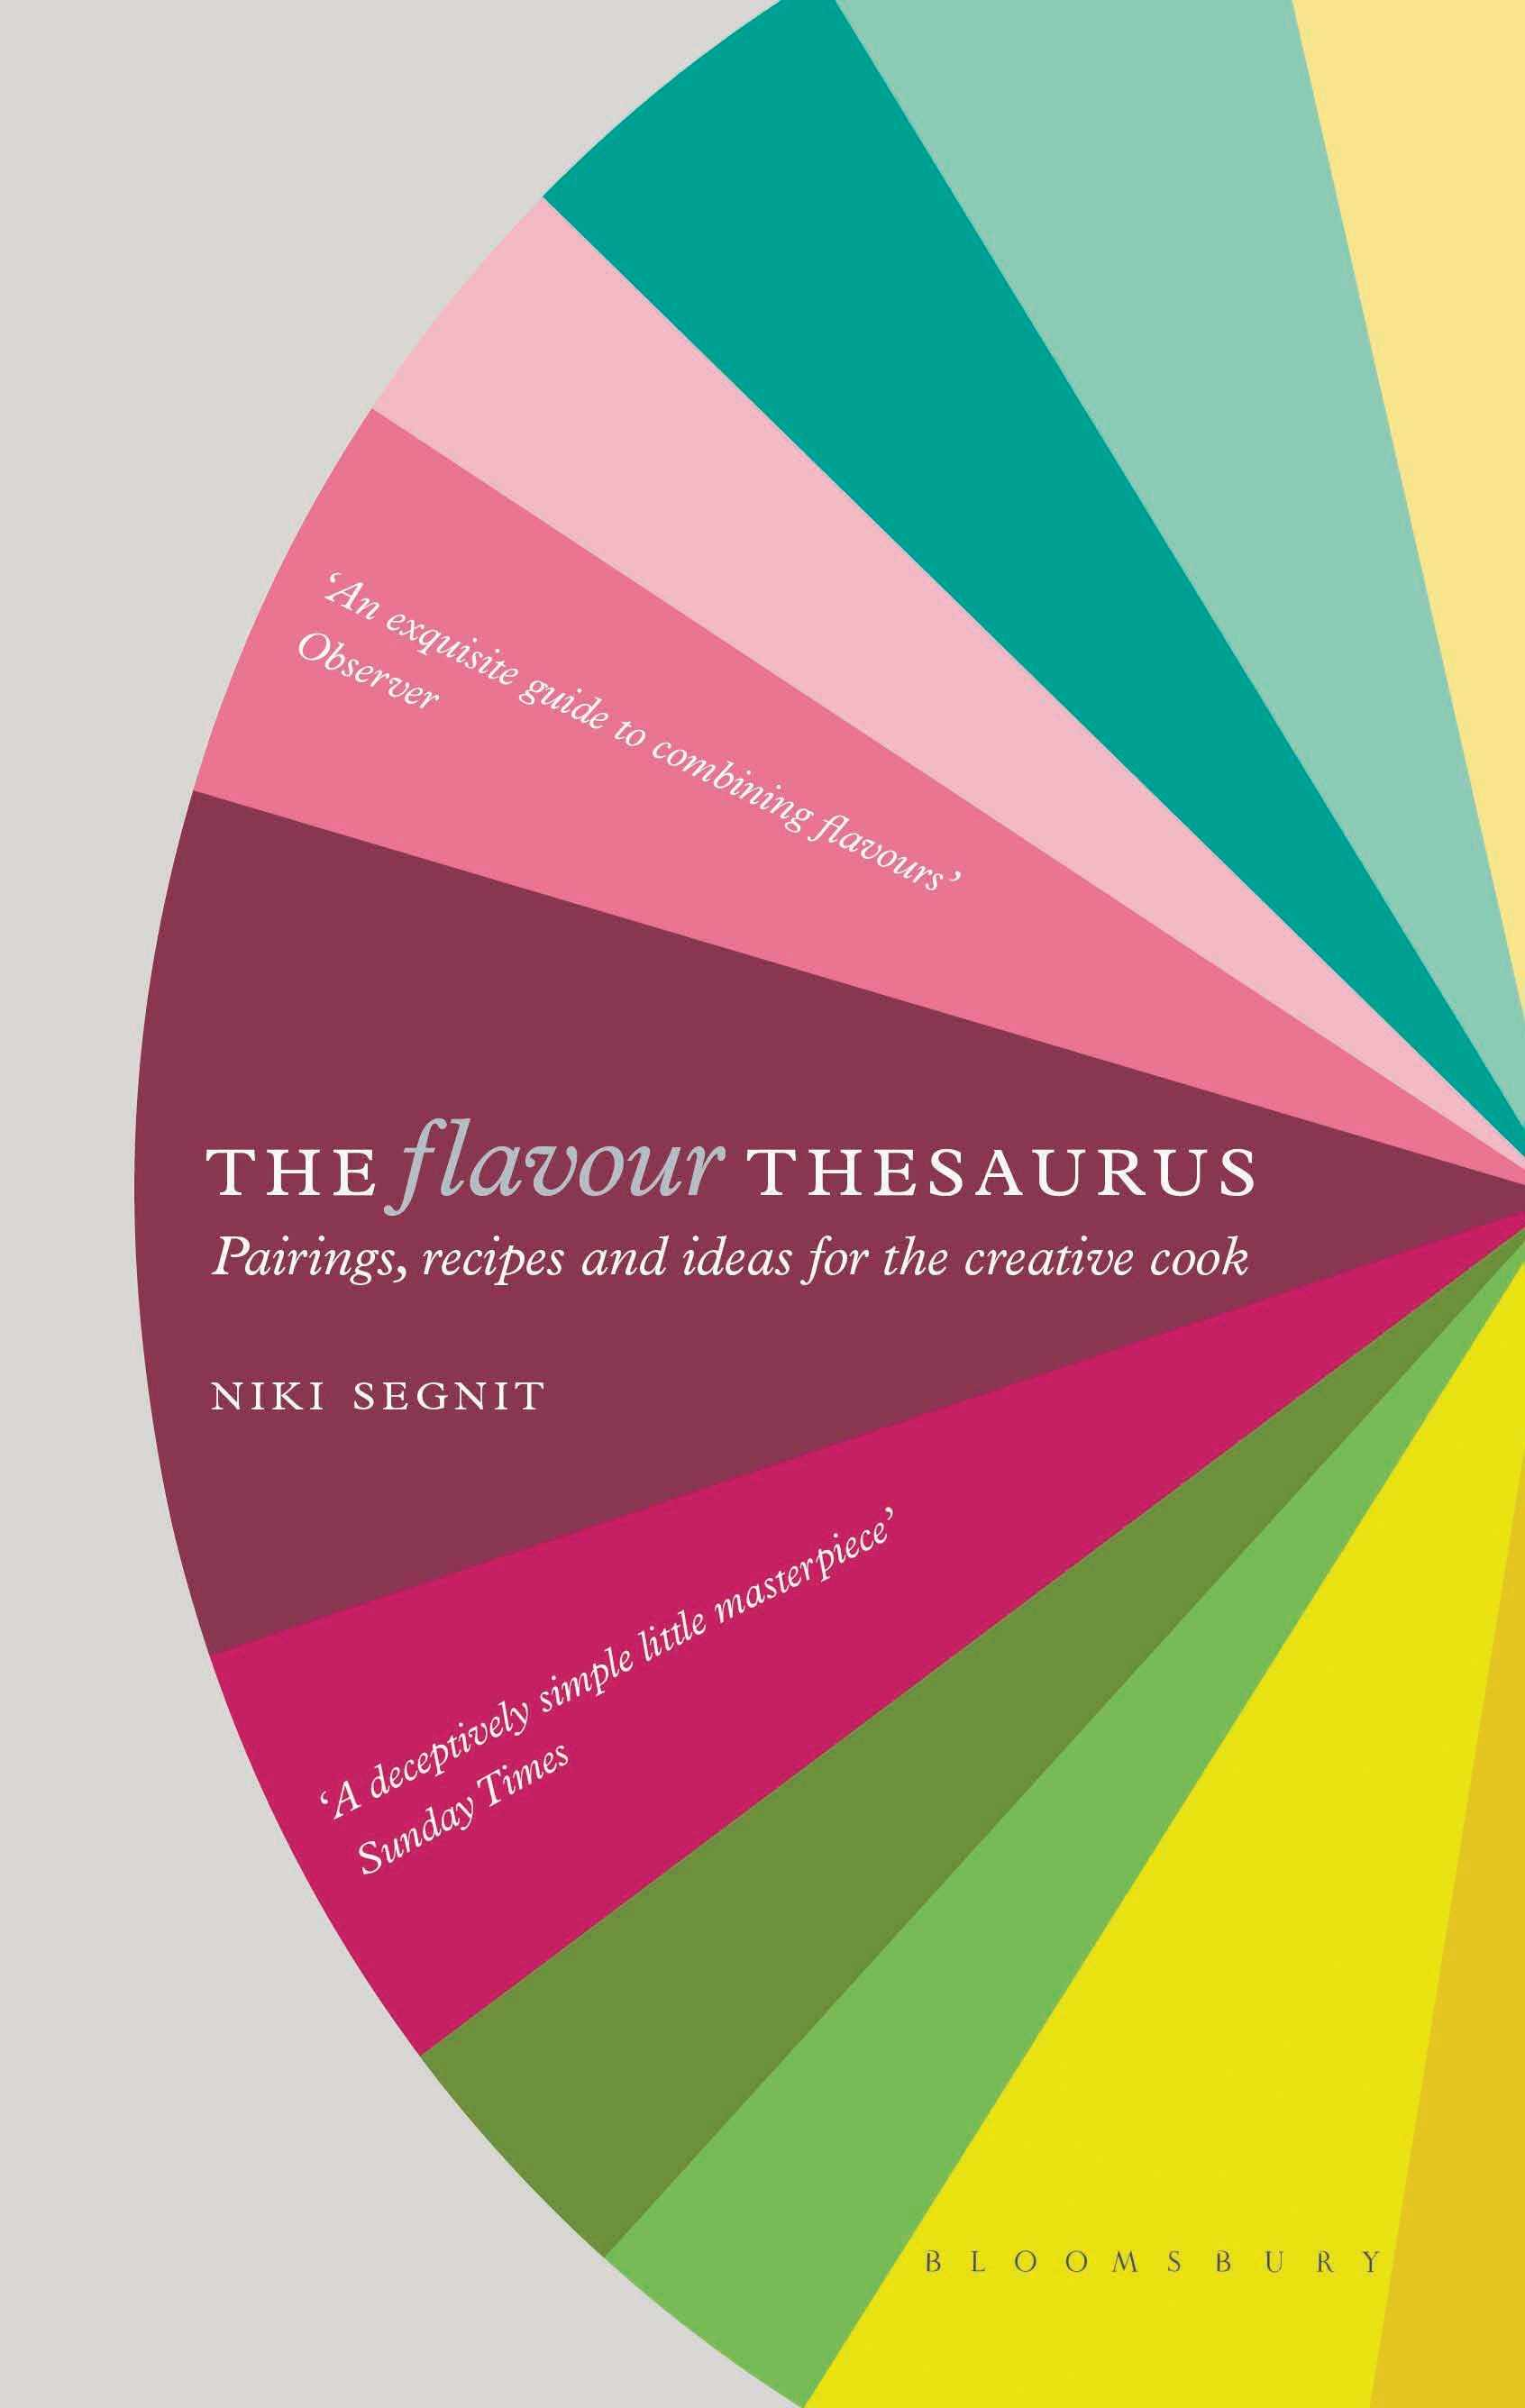 The Flavour Thesaurus Niki Segnit (Bloomsbury, £18.99)